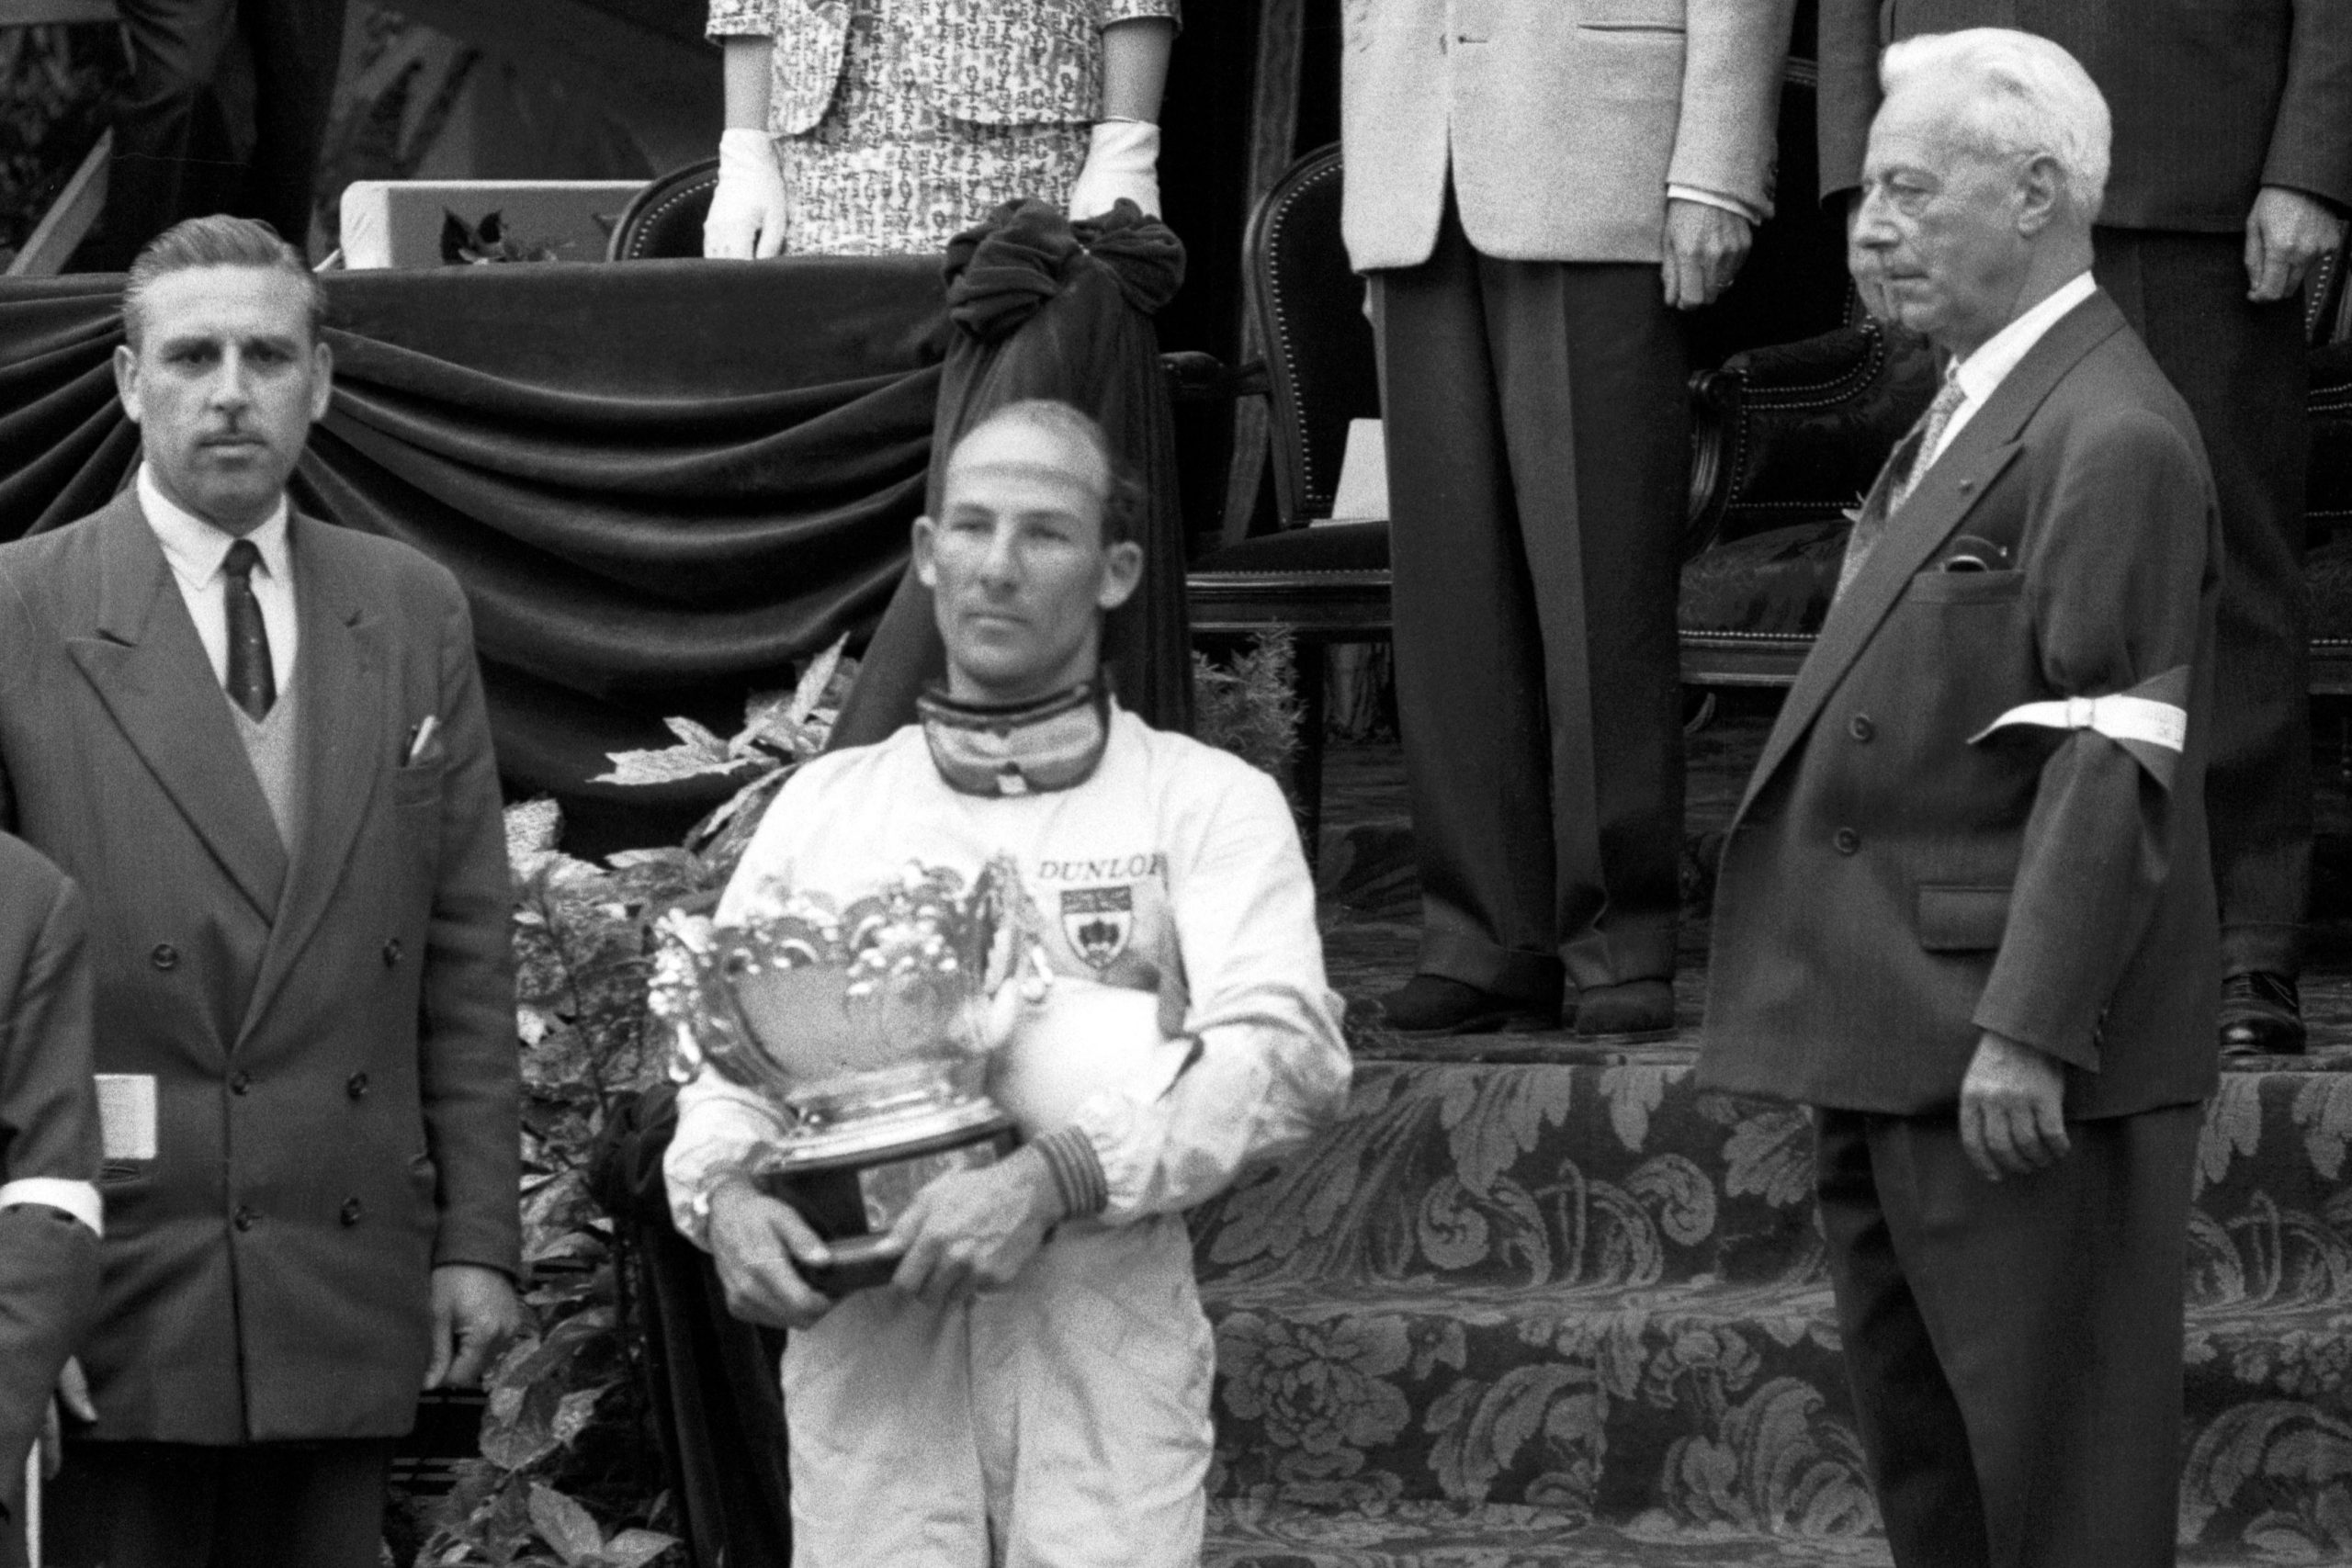 Race winner Stirling Moss on the podium.